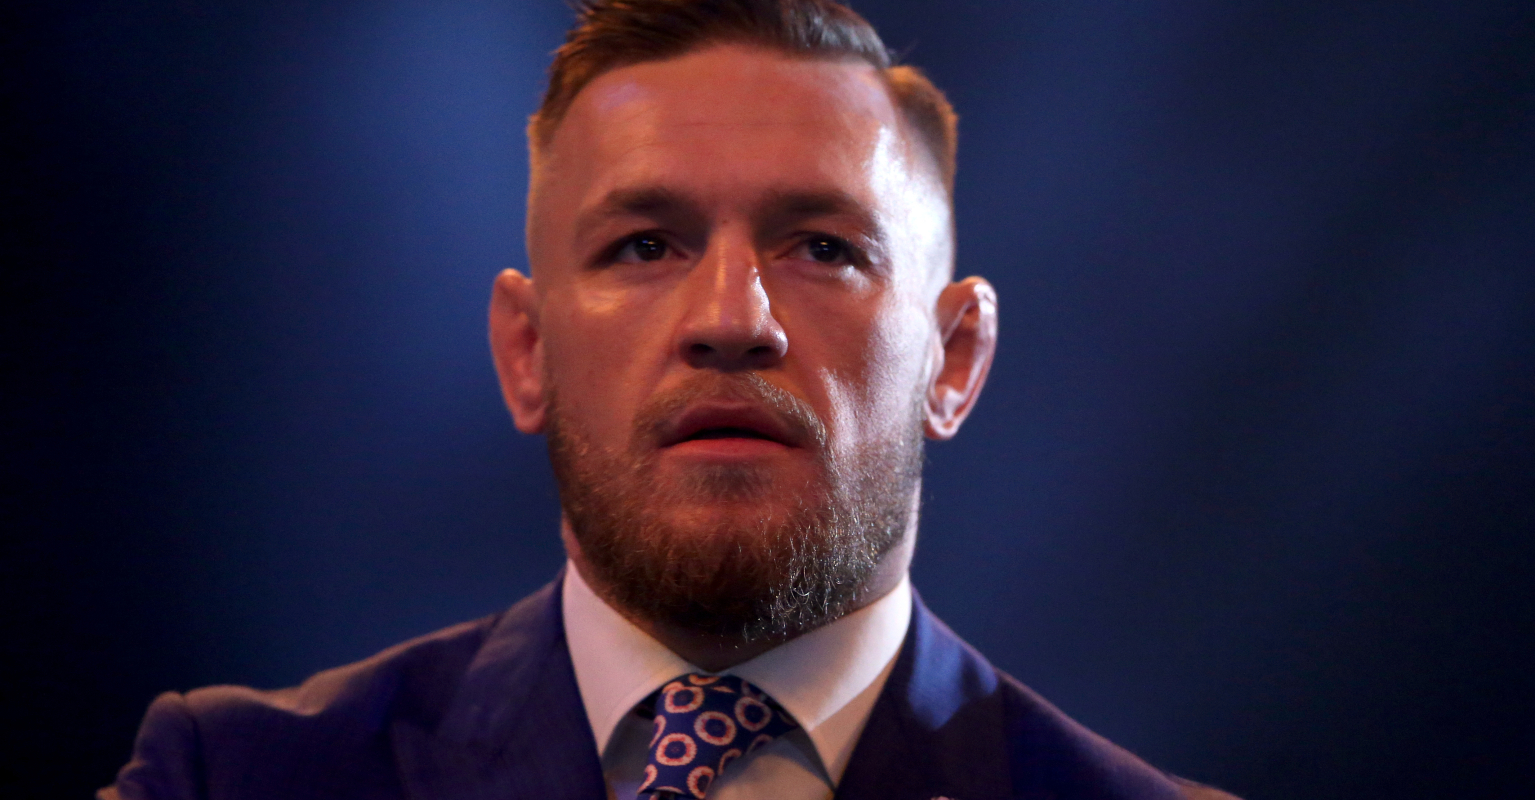 People are savagely trolling Conor McGregor's new million dollar watch